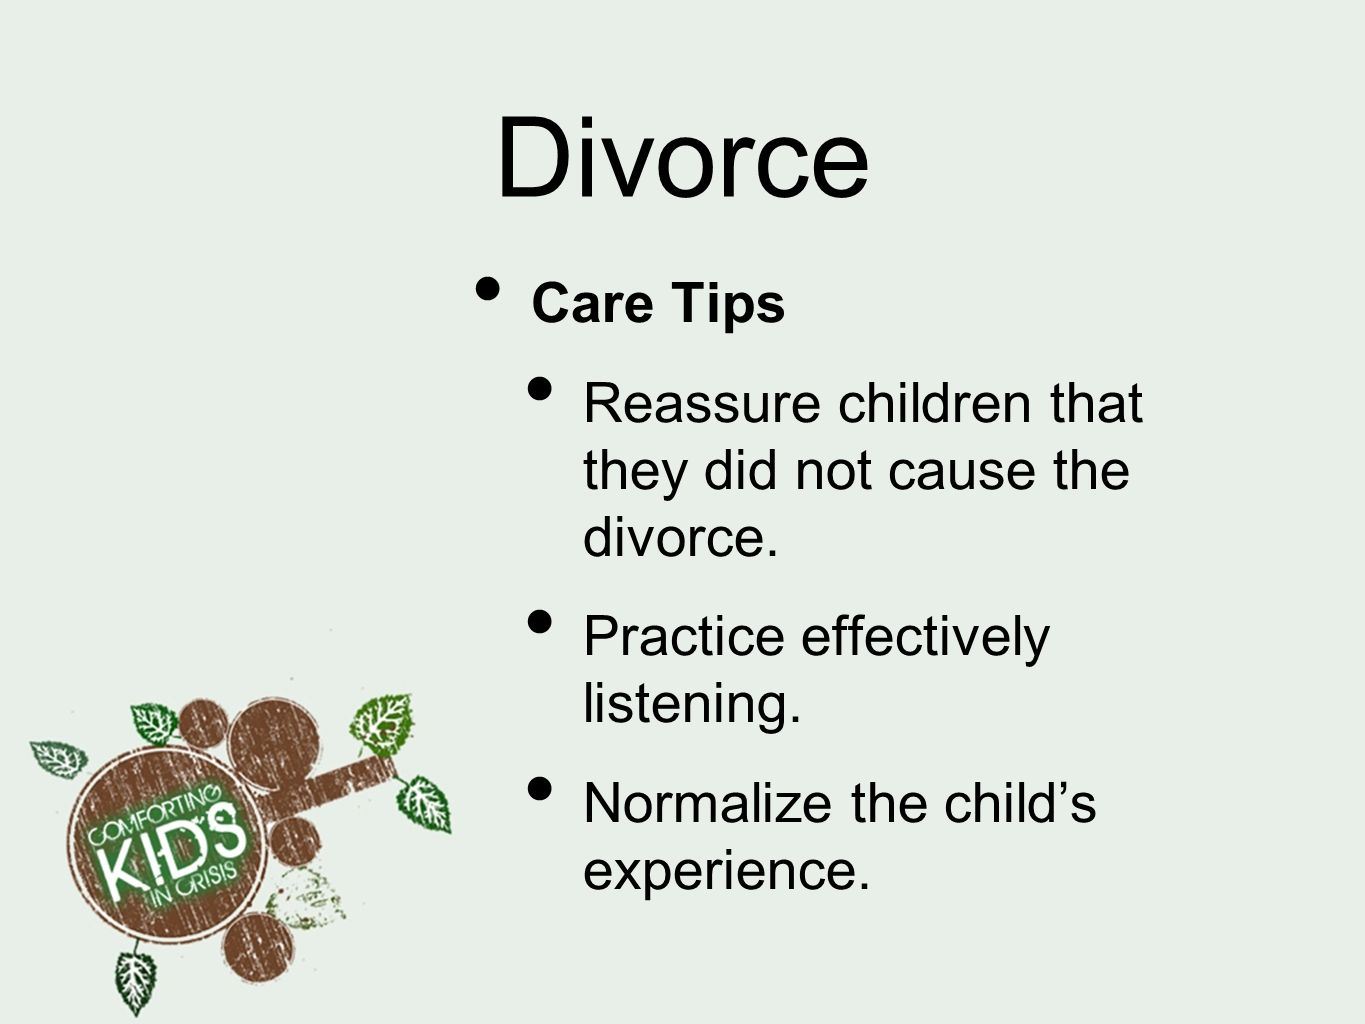 Divorce Care Tips Reassure children that they did not cause the divorce. Practice effectively listening. Normalize the childs experience.